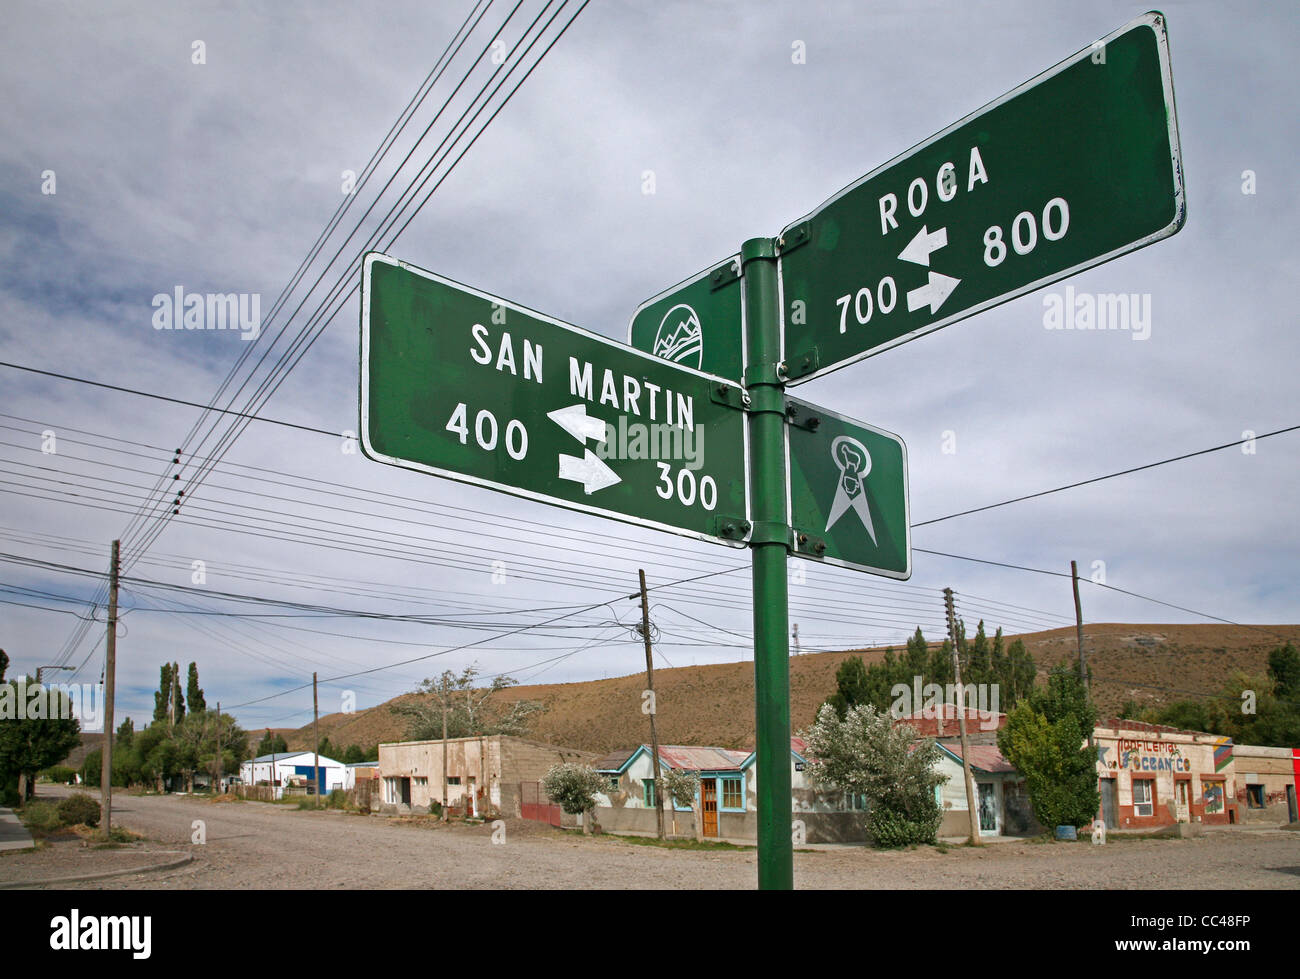 Signpost at Rio Mayo, a small remote village on the route 40 in Patagonia, Argentina - Stock Image